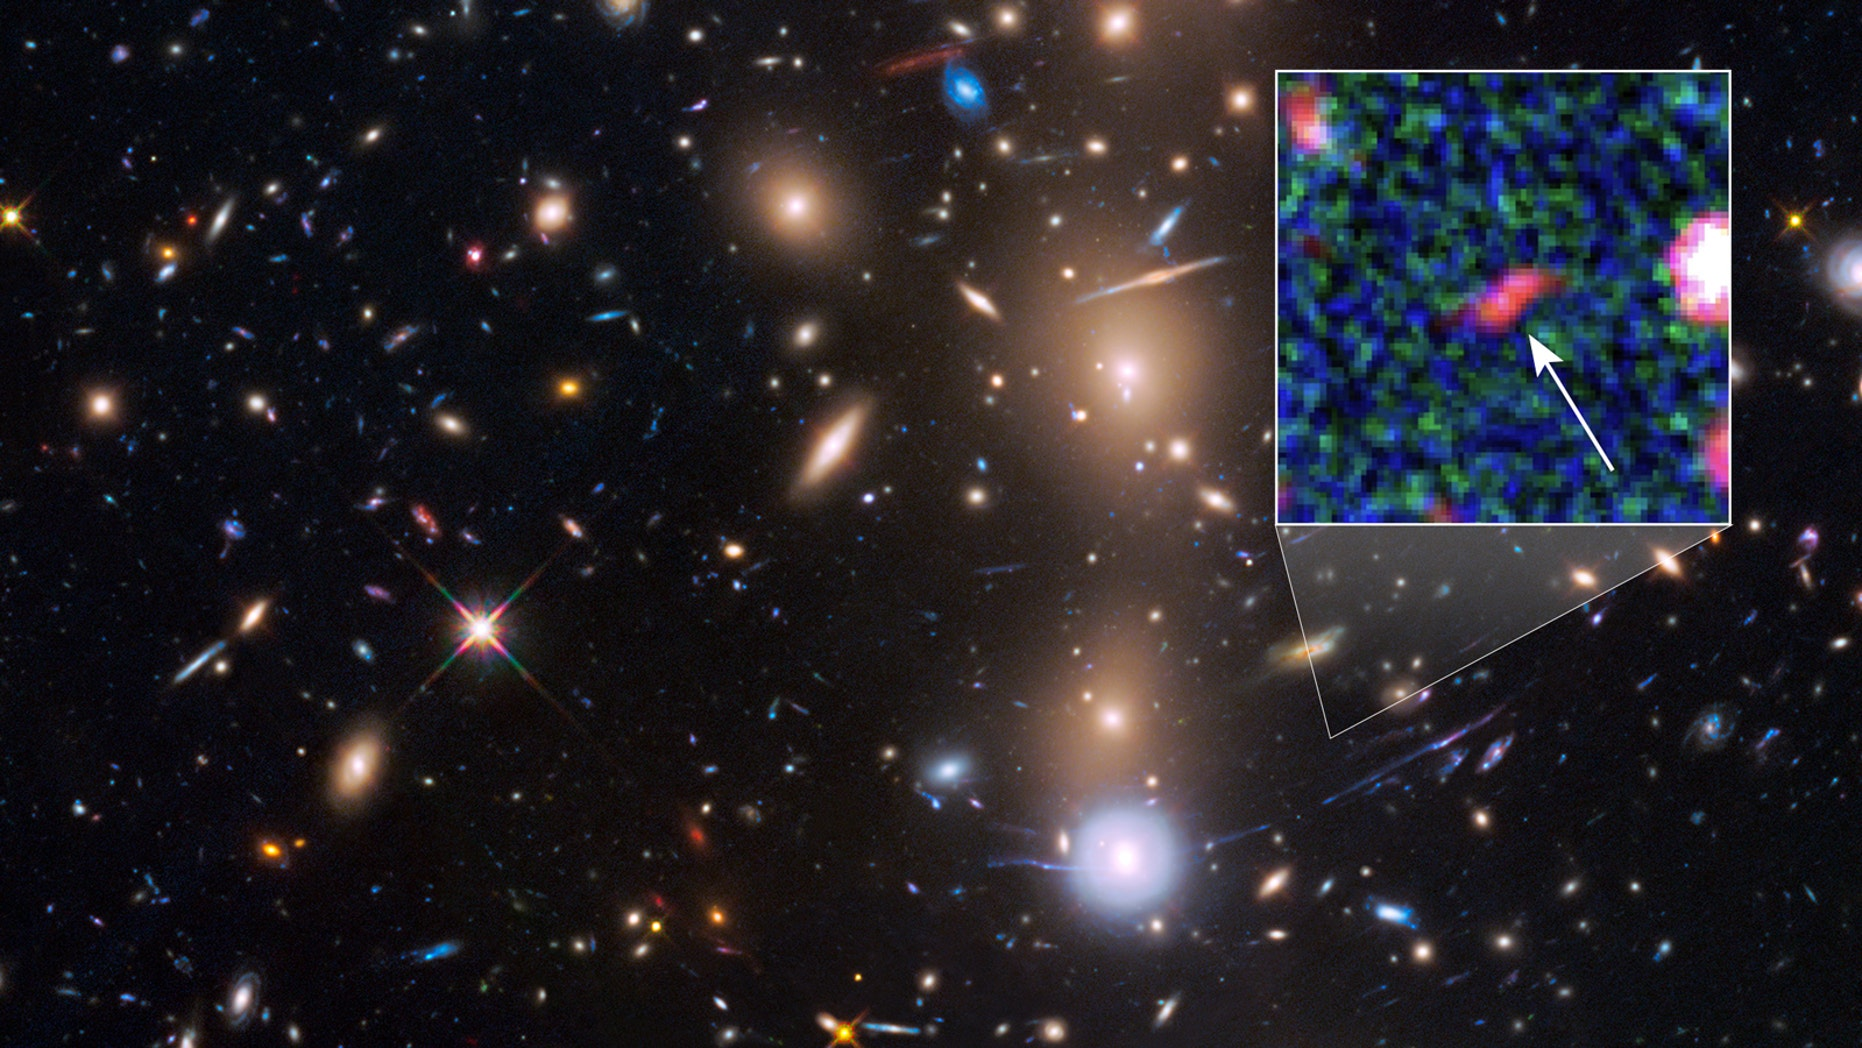 This is a Hubble Space Telescope view of a very massive cluster of galaxies, MACS J0416.1-2403, located roughly 4 billion light-years away and weighing as much as a million billion suns.